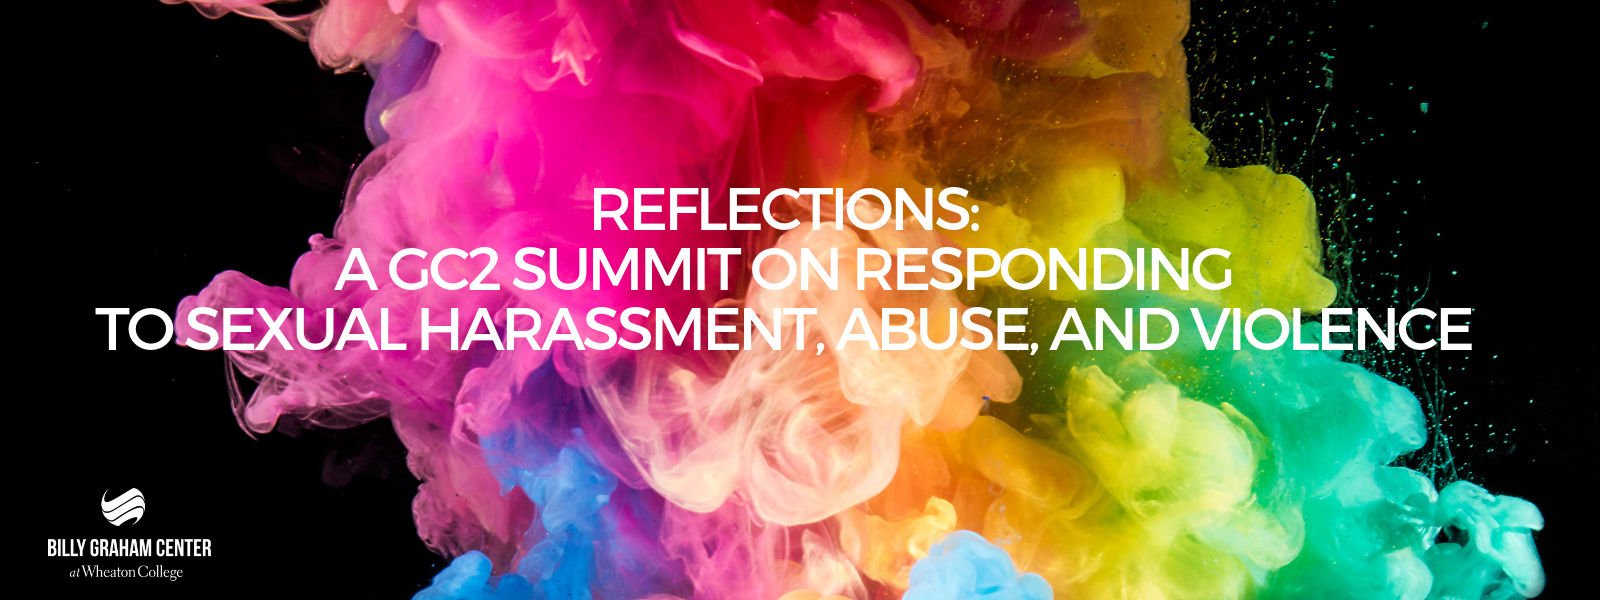 Reflections: A GC2 Summit on Responding to Sexual Harassment, Abuse, and Violence